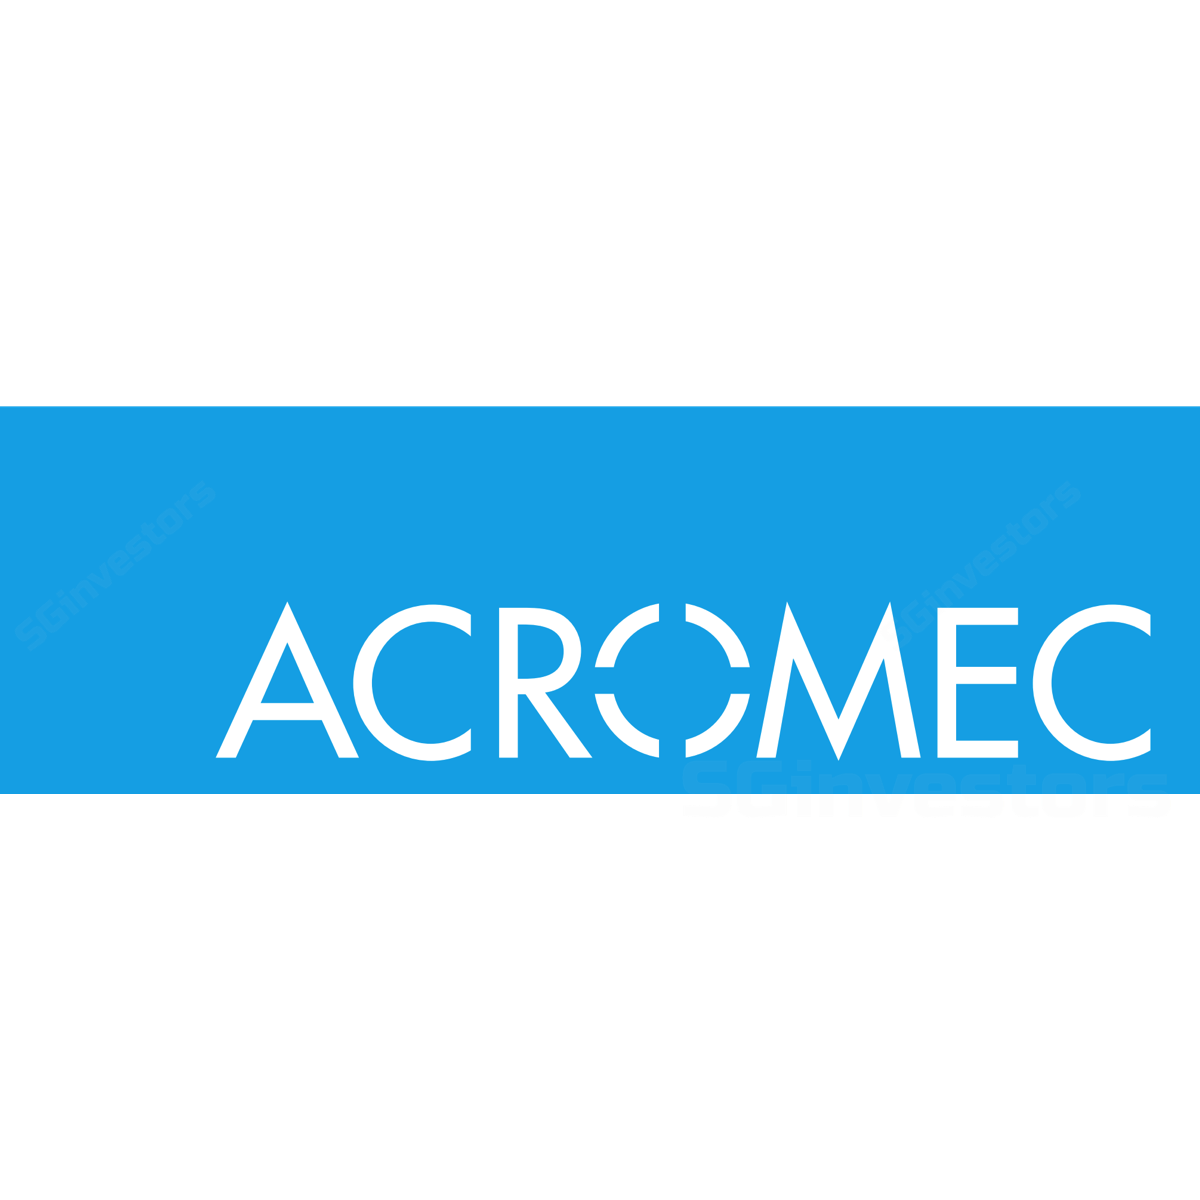 Acromec Limited - RHB Invest 2017-05-02: Stiff Competition Hurts Margins